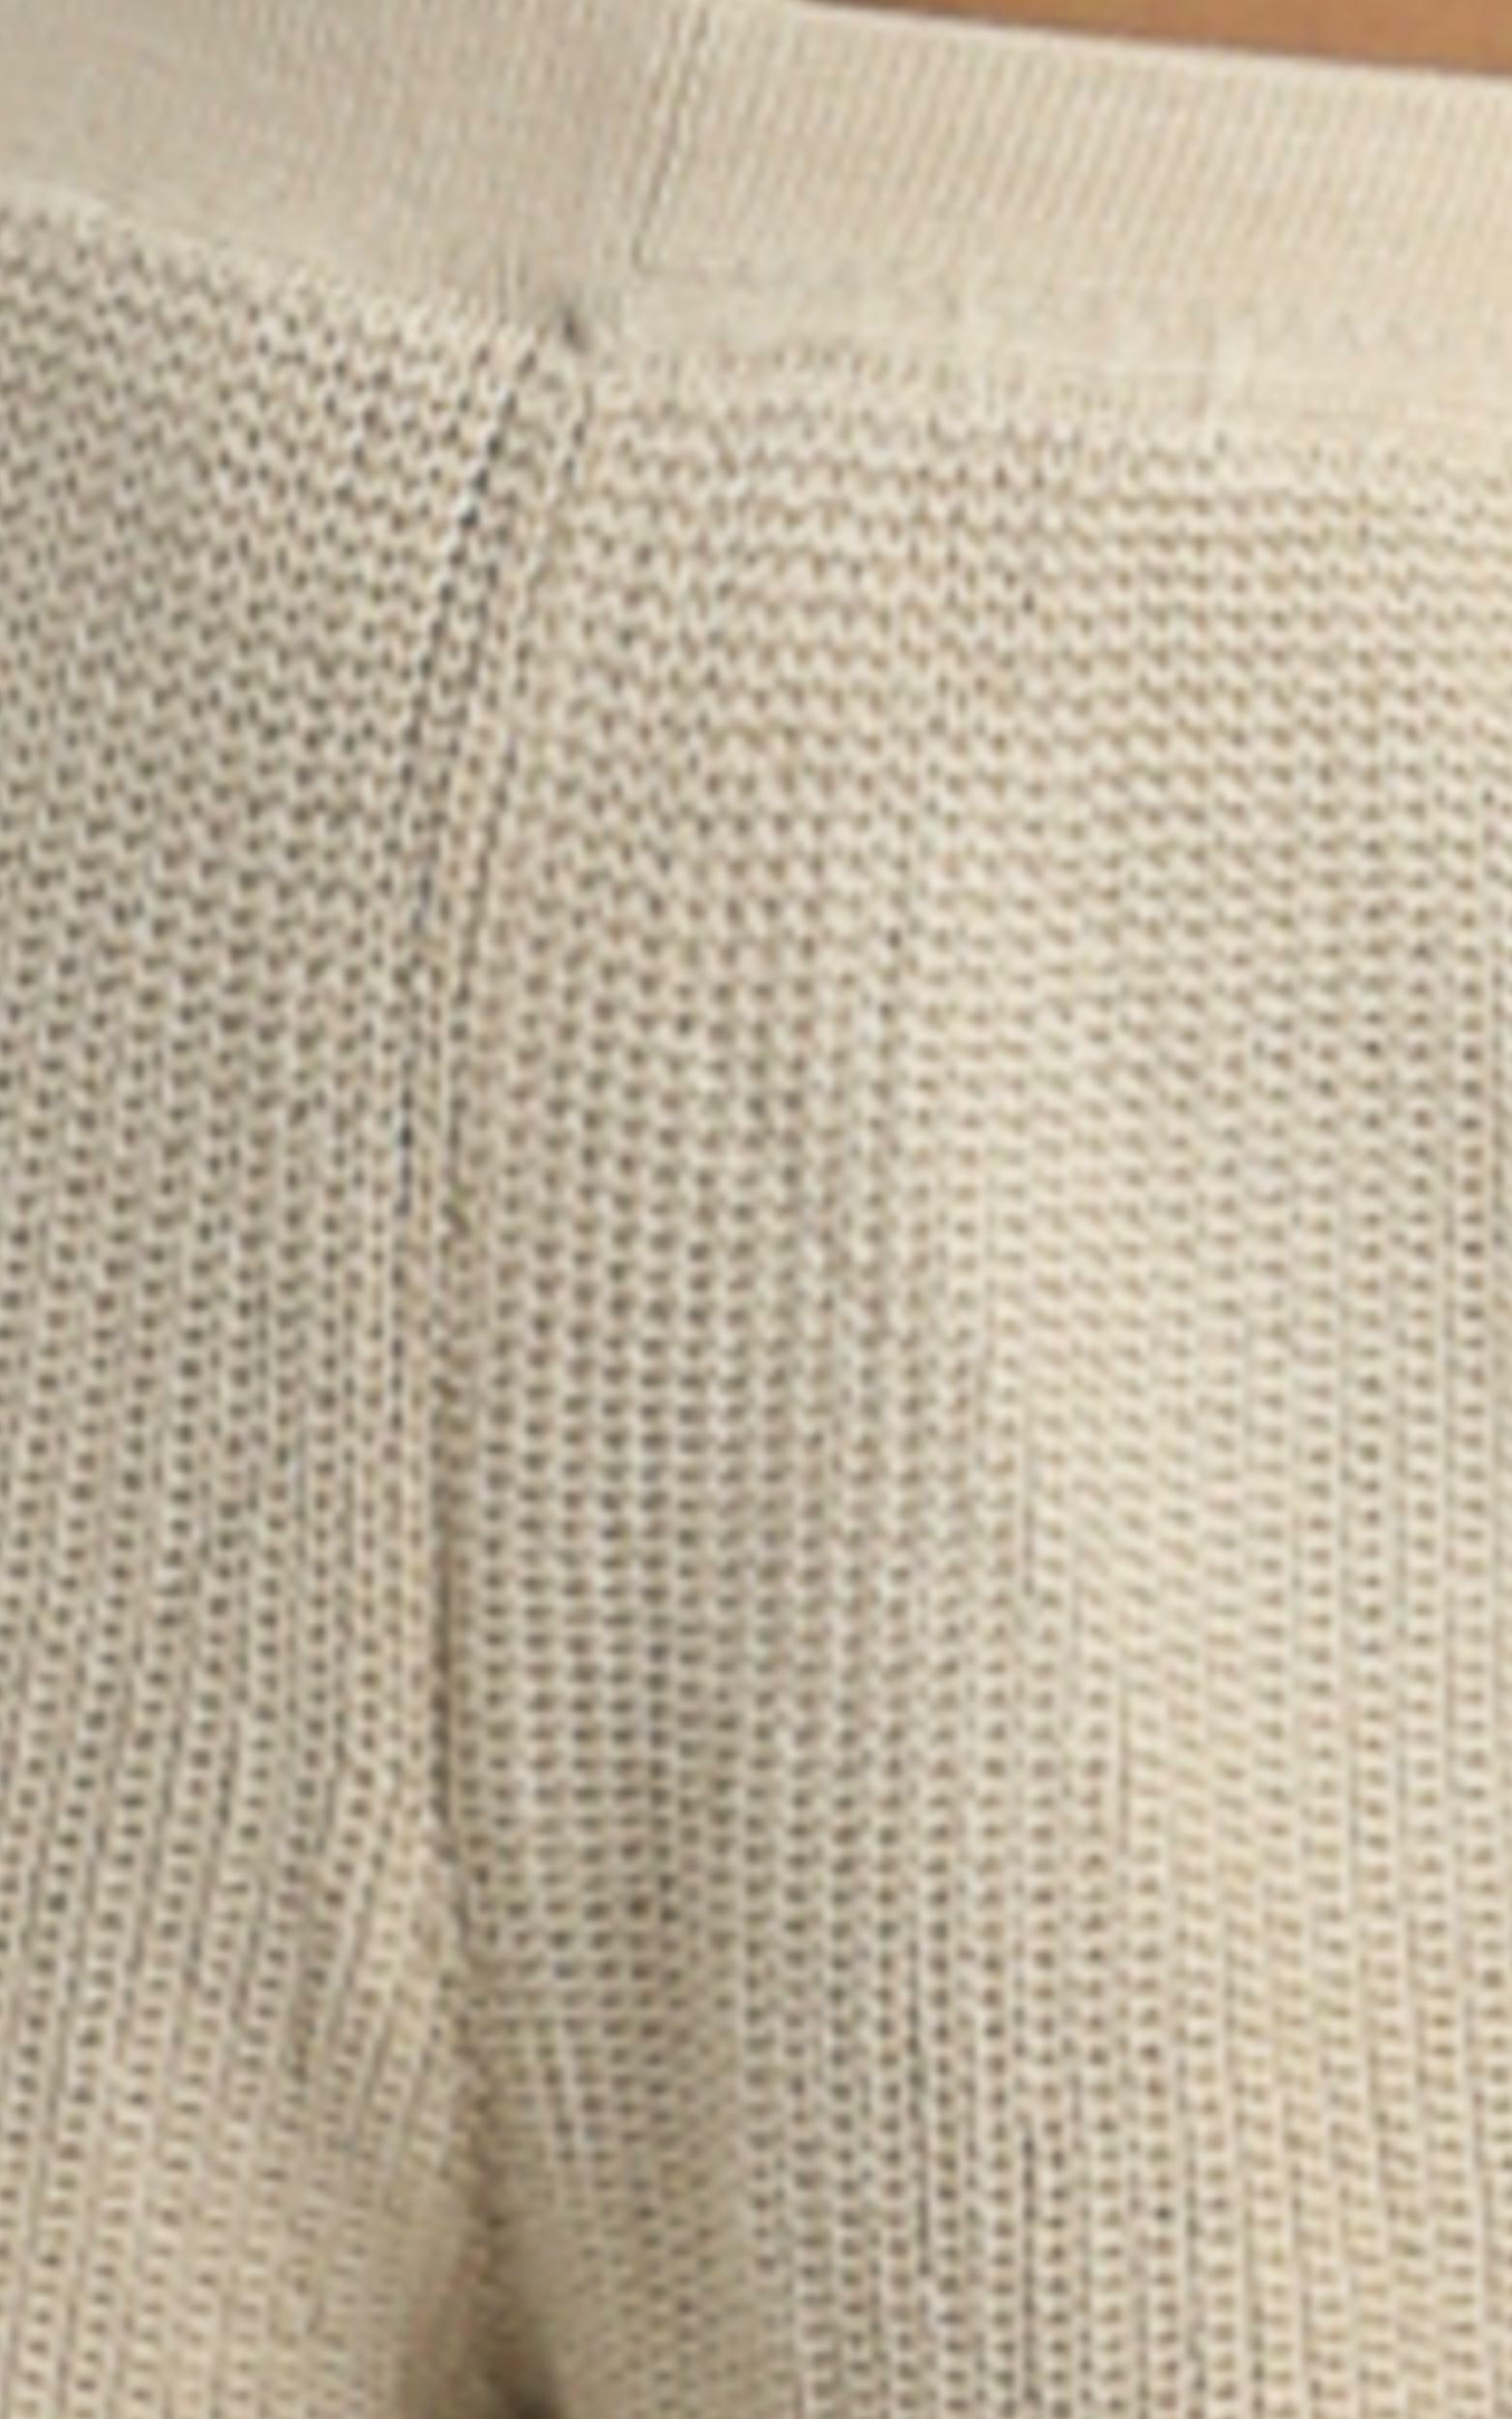 Jacquelyn Knitted Shorts in Beige - 8 (S), Beige, hi-res image number null